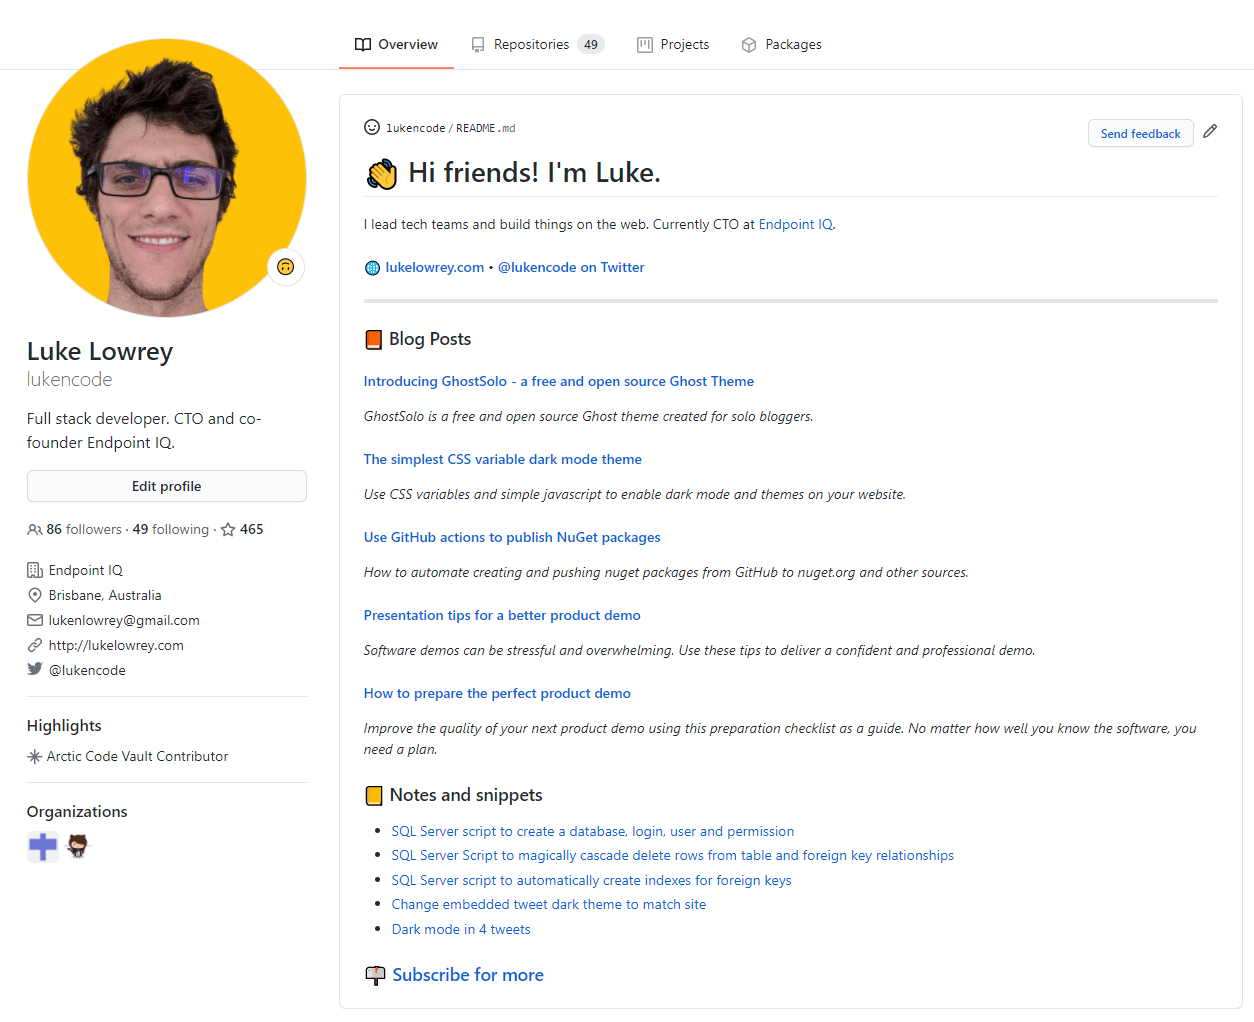 GitHub action to automatically add blog posts to your profile